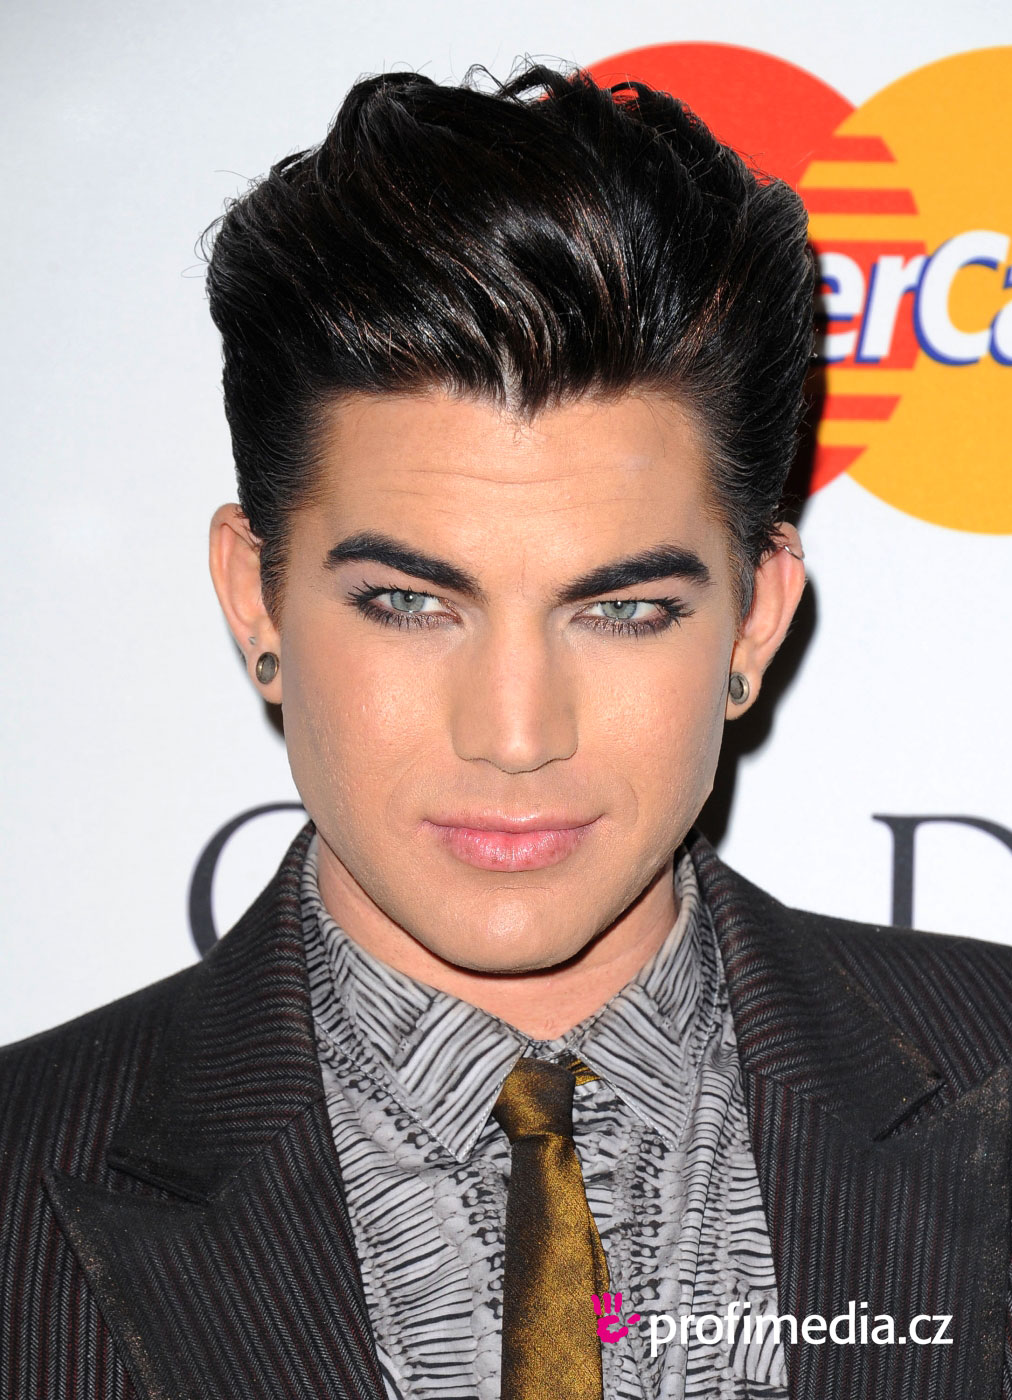 Miraculous Adam Lambert Hairstyle Easyhairstyler Short Hairstyles For Black Women Fulllsitofus